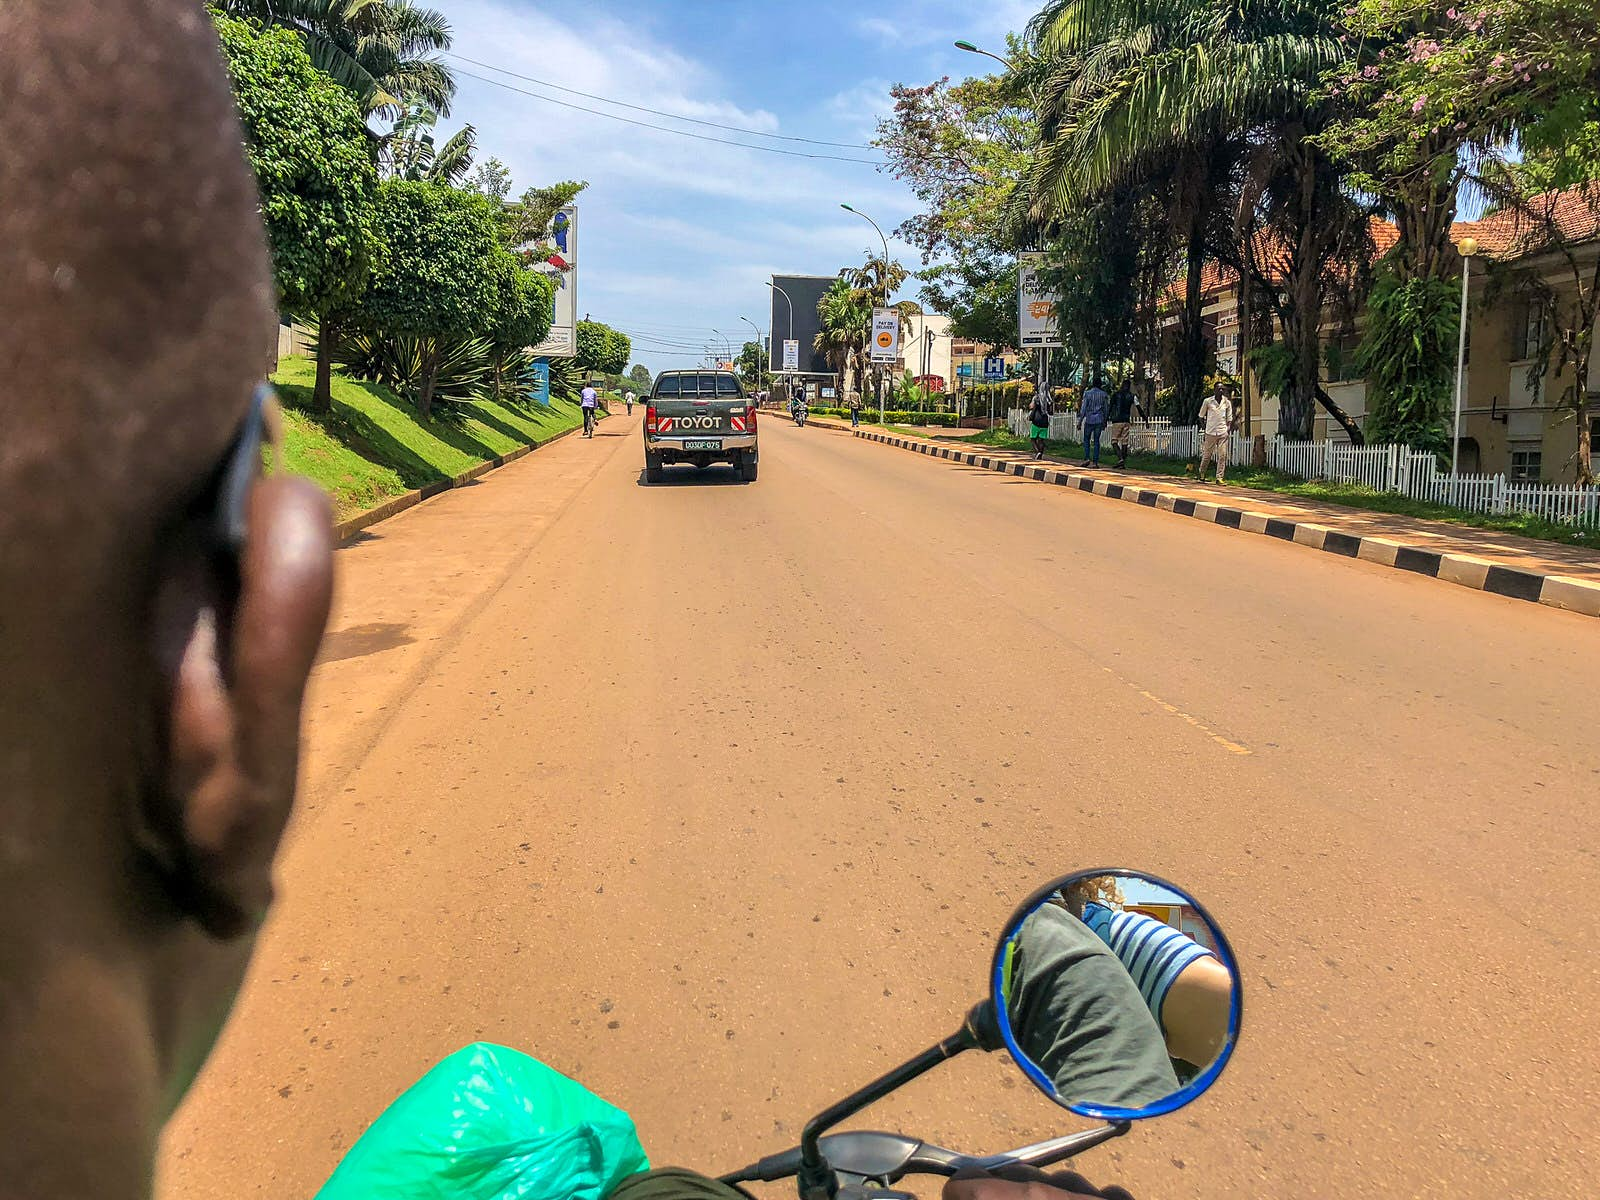 The right-hand side of the head of the motorcycle taxi (boda boda) driver is visible on the left side of the image; straight ahead is the sideview mirror and the paved road ahead